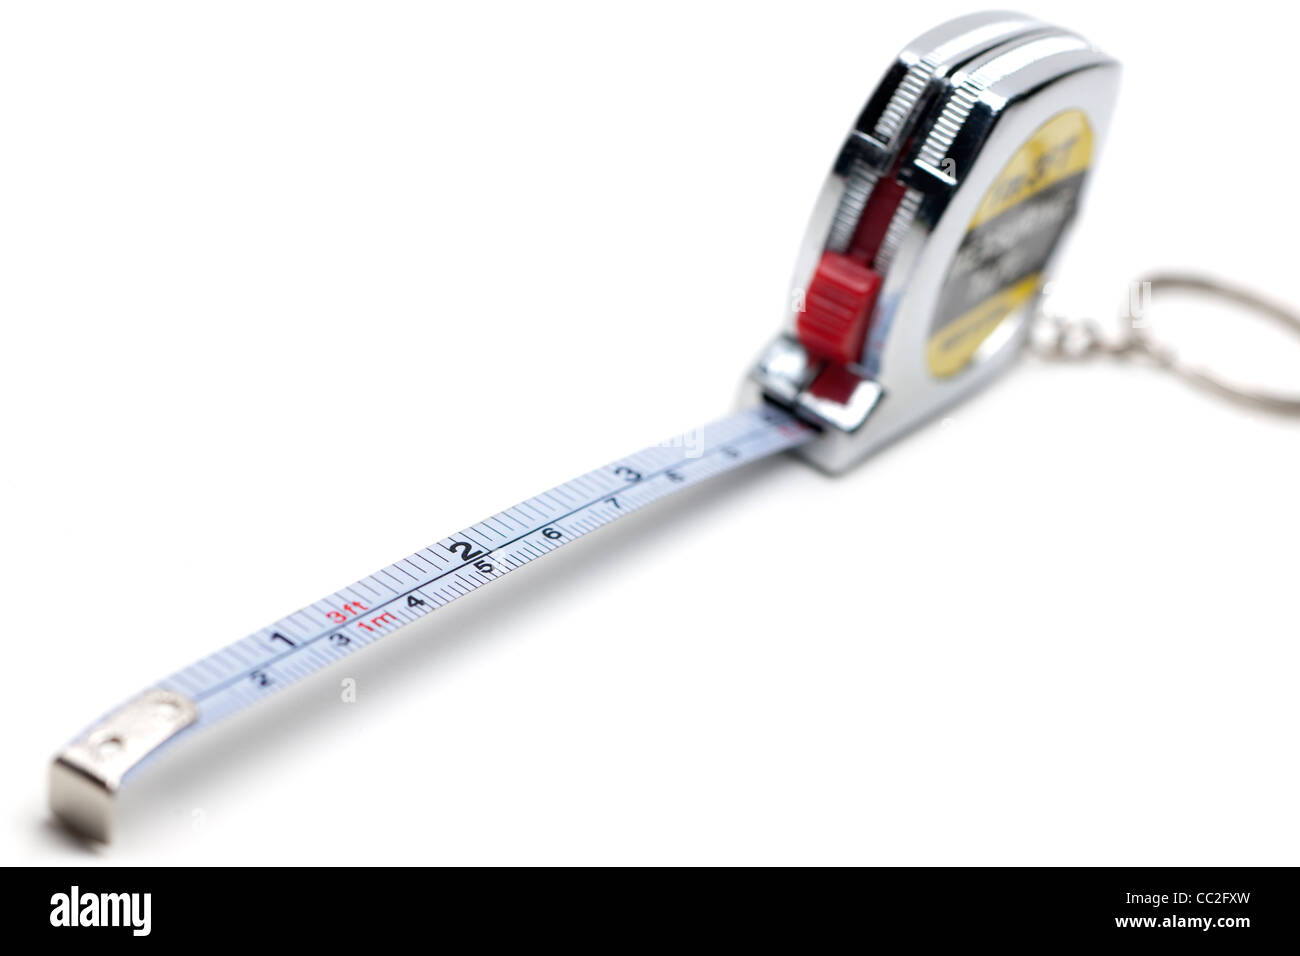 Extended metal tape measure - Stock Image